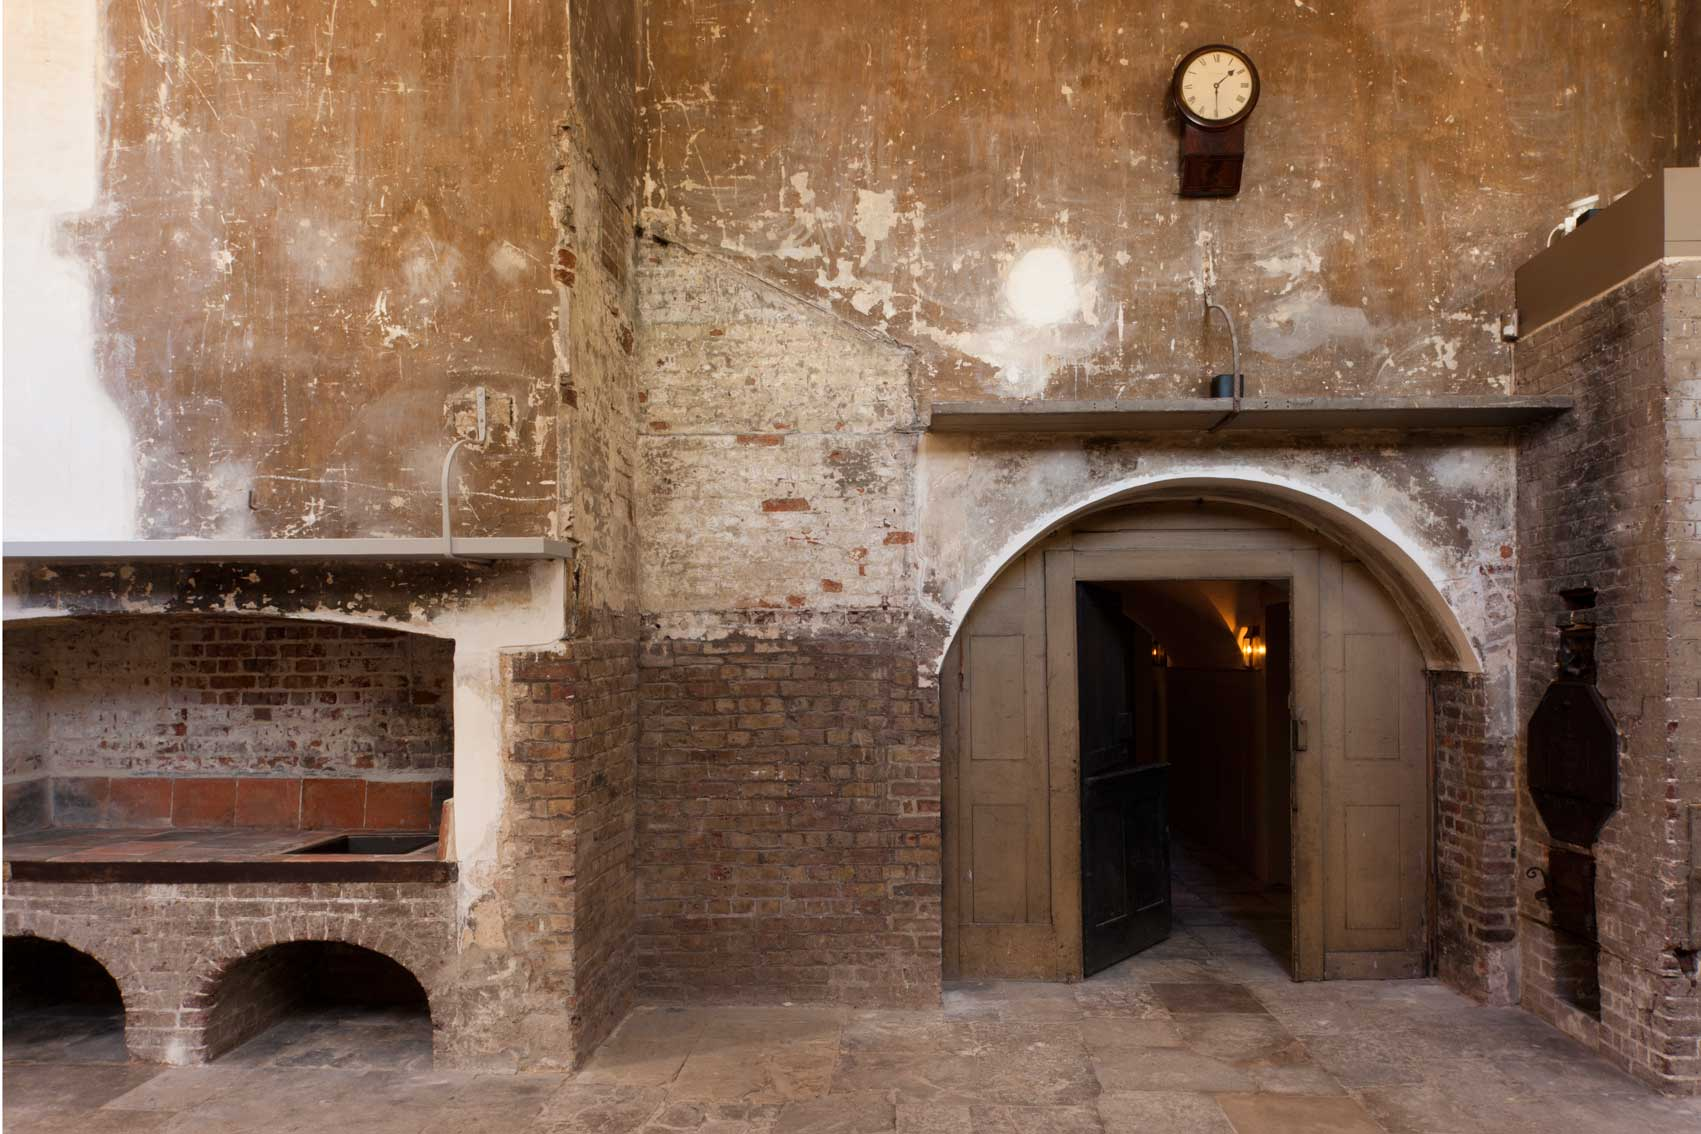 Royal Georgian Kitchens displaying weathered exposed brick work and open oven with high arched doorways Kew Palace Venue Hire TW9